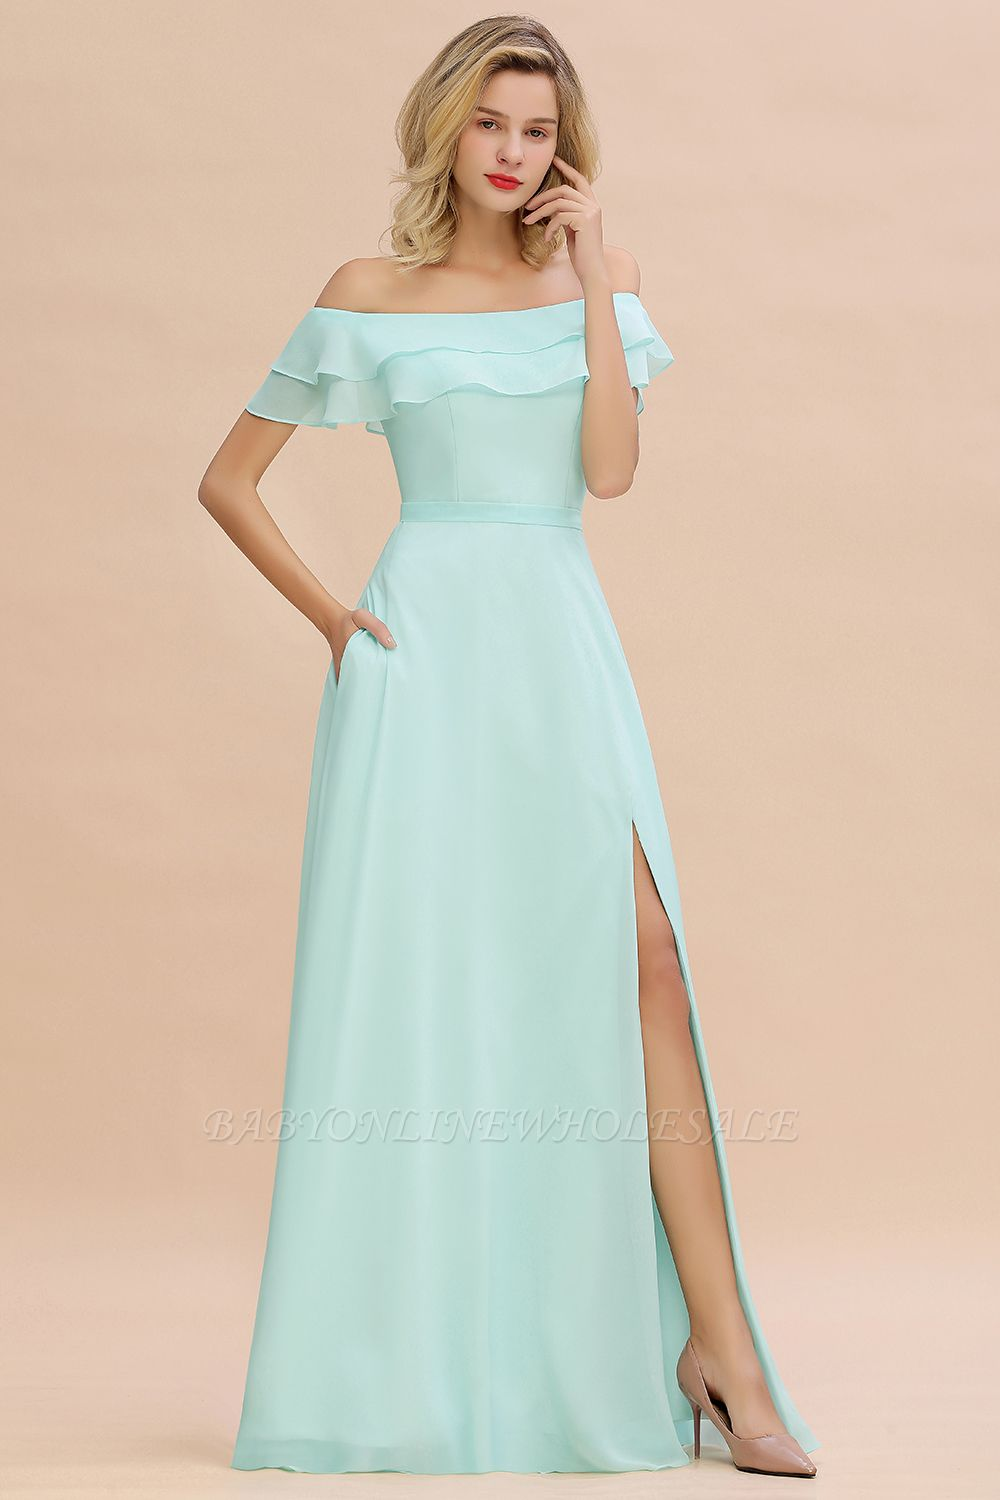 High Quality Off-the-Shoulder Front-Slit Mint Green Bridesmaid Dress